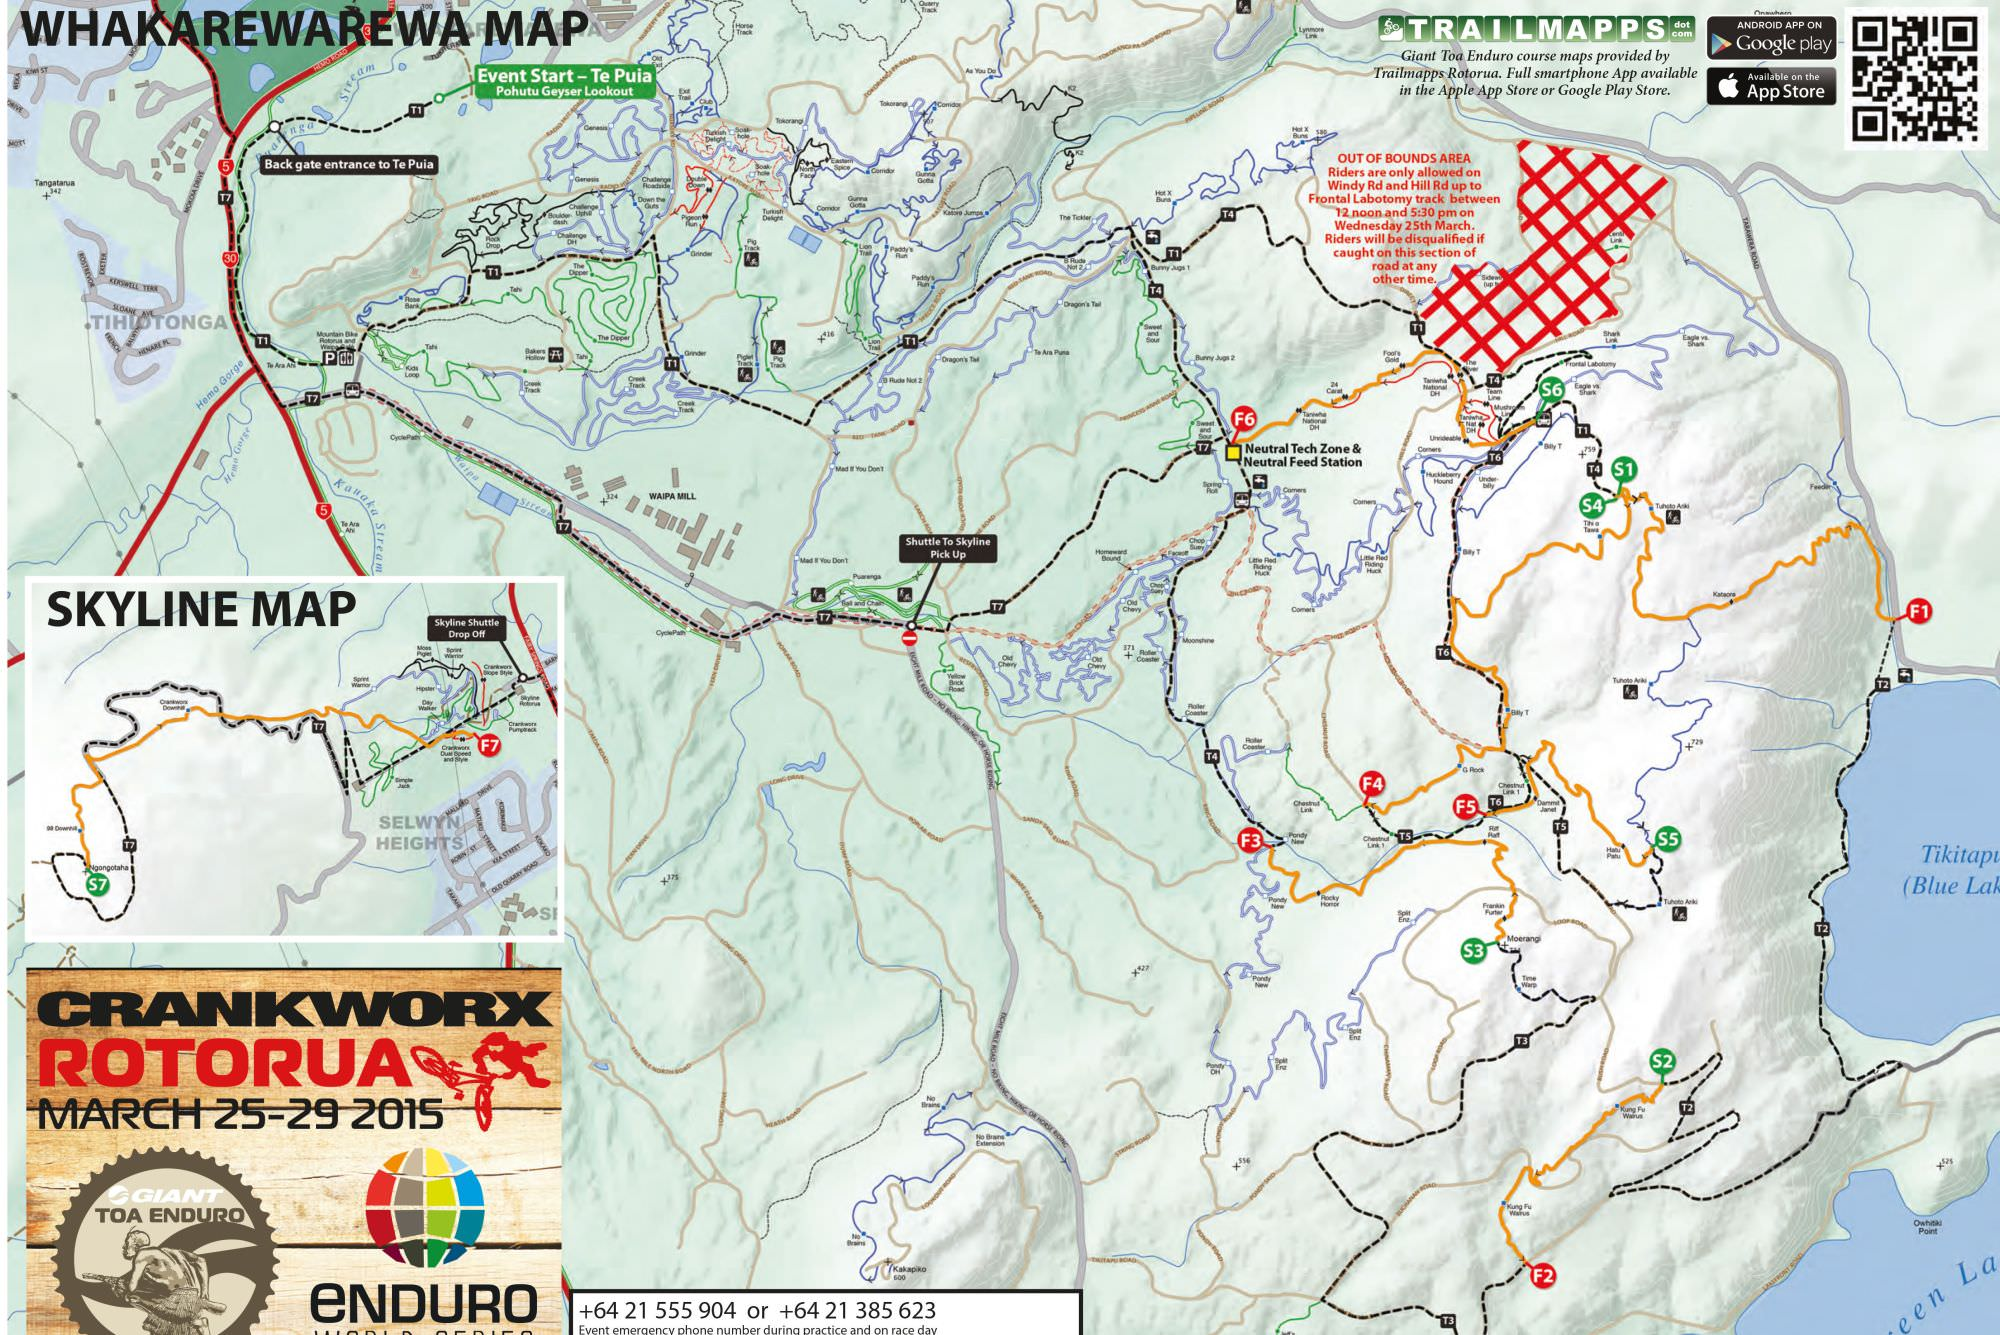 Giant Toa Enduro Releases Course Map for the first EWS Race of 2015